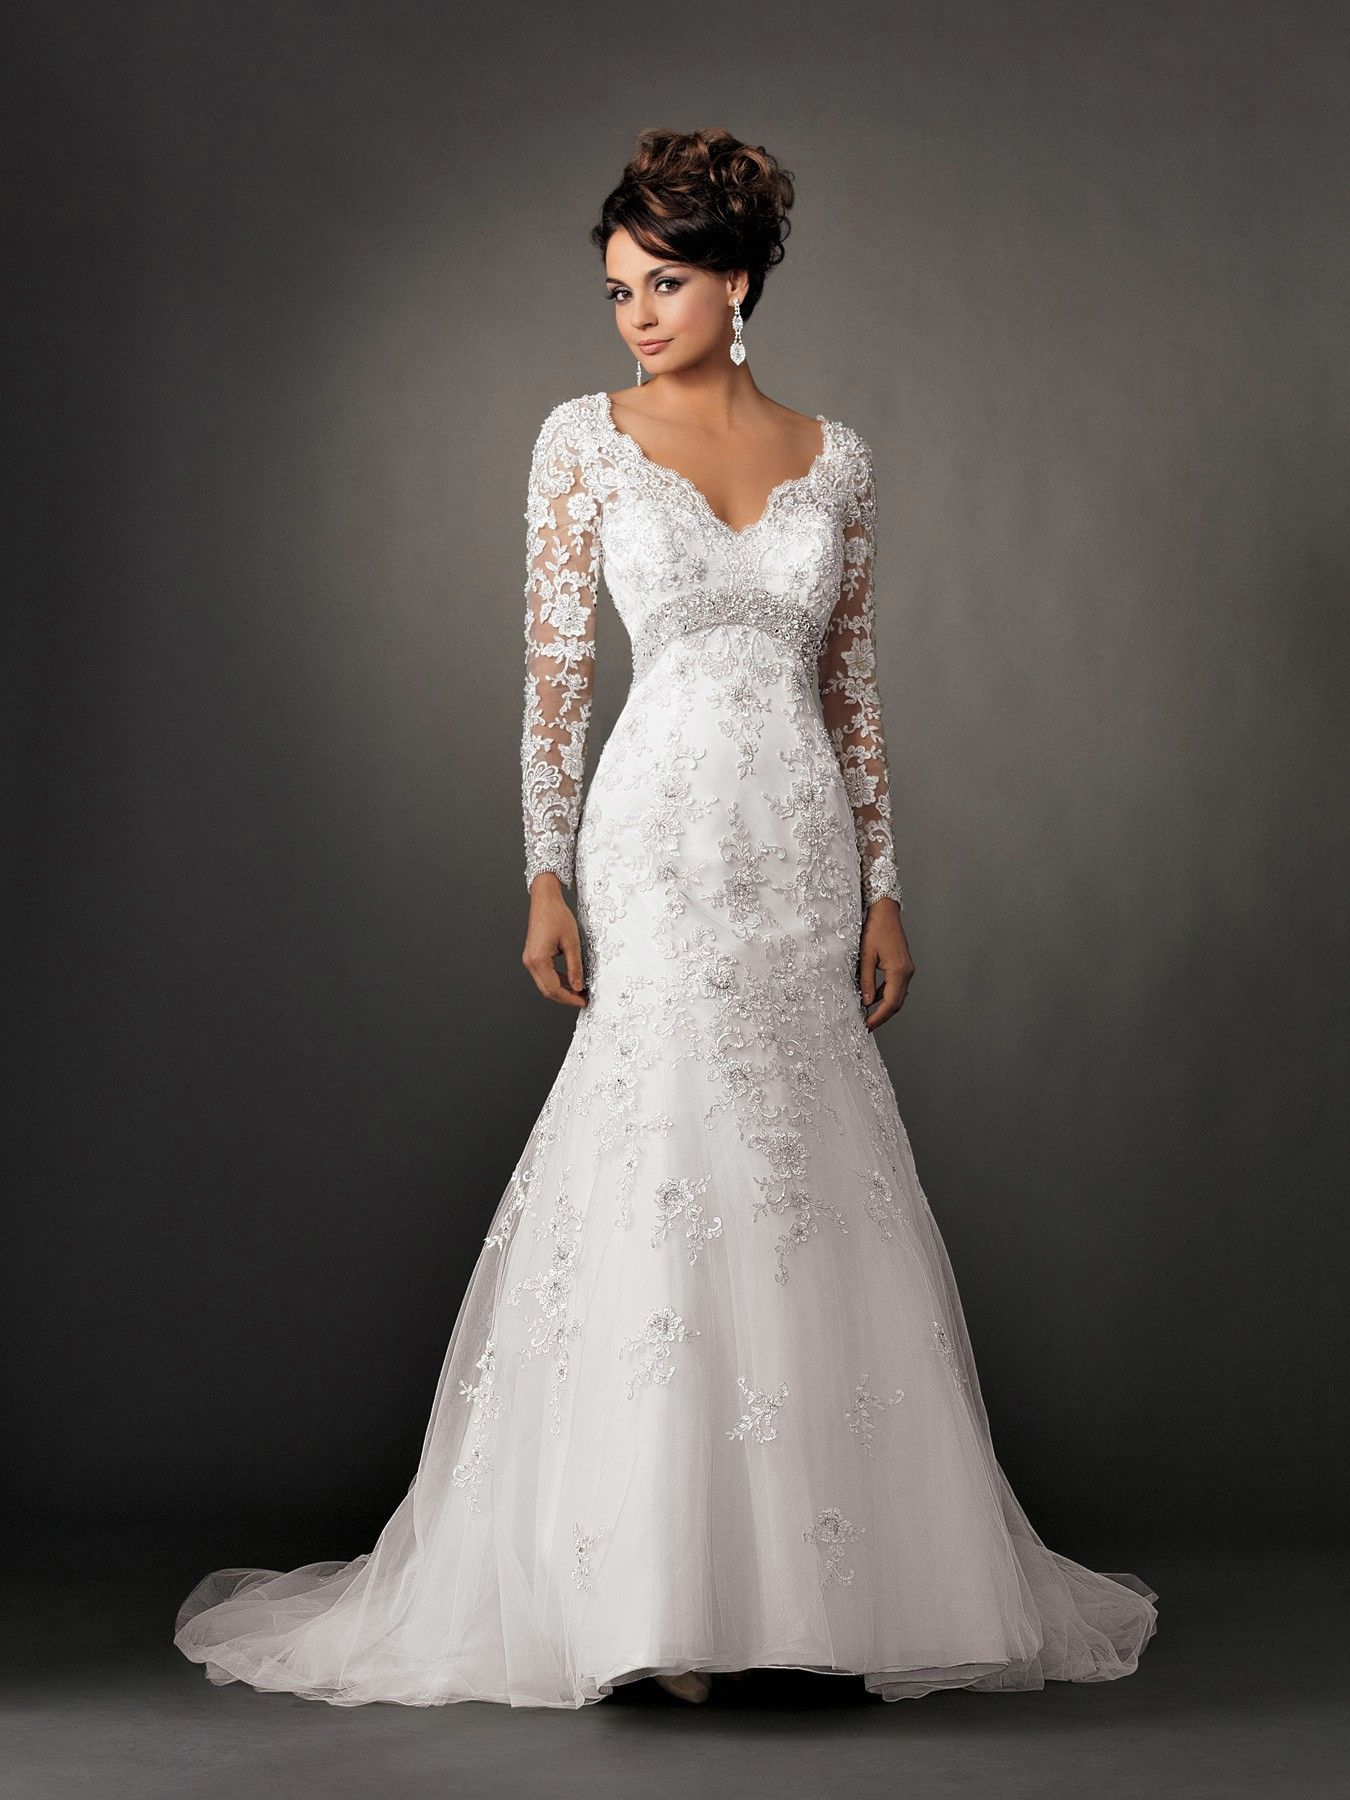 651d12d3ba01c Choosing The Right Wedding Dress For Your Body Shape